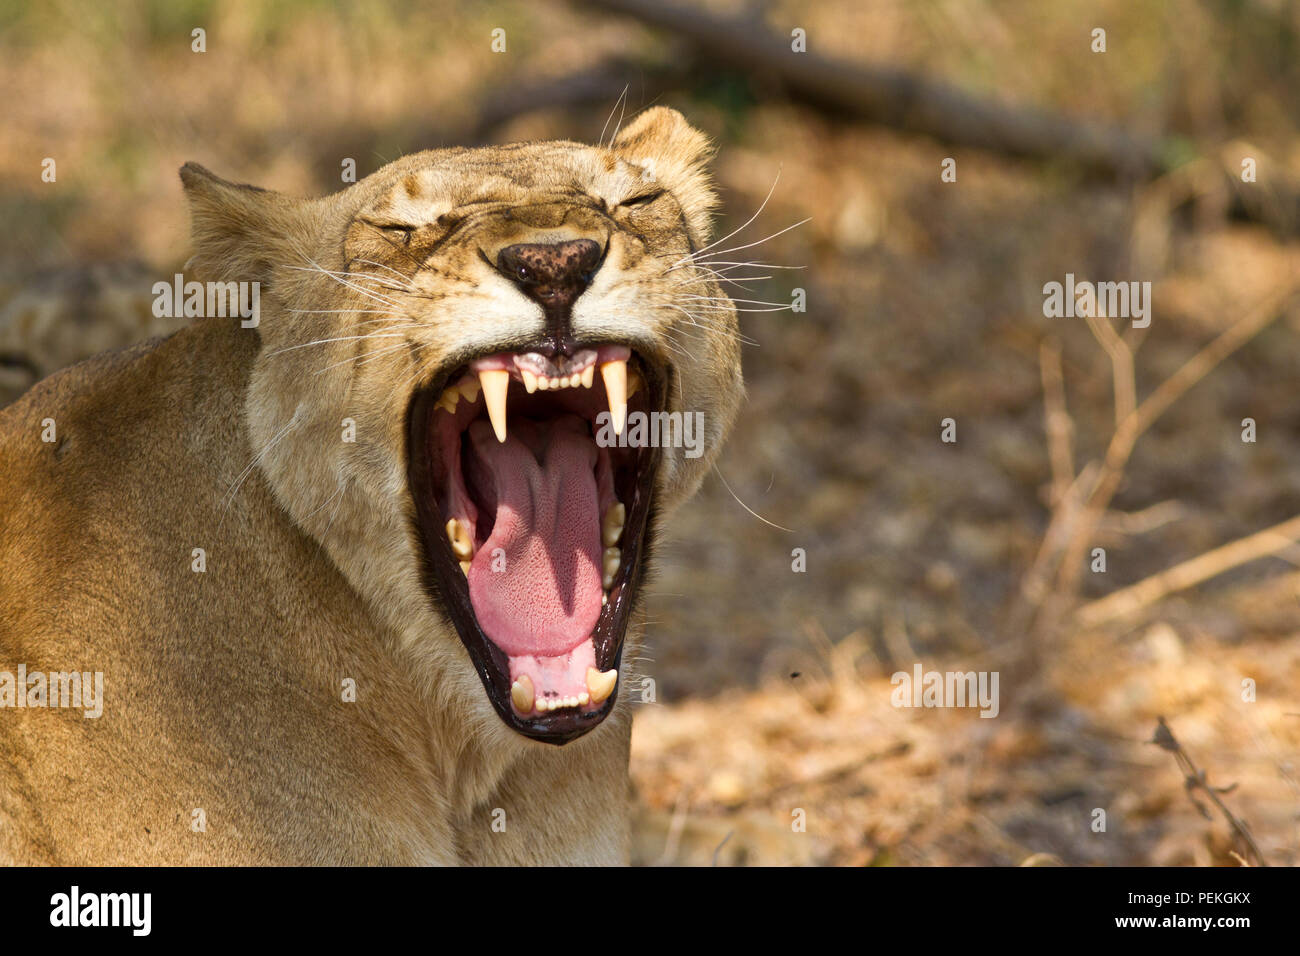 A lioness yawns while resting during the heat of the day in the riverine woodlands close to the Katuma River. - Stock Image